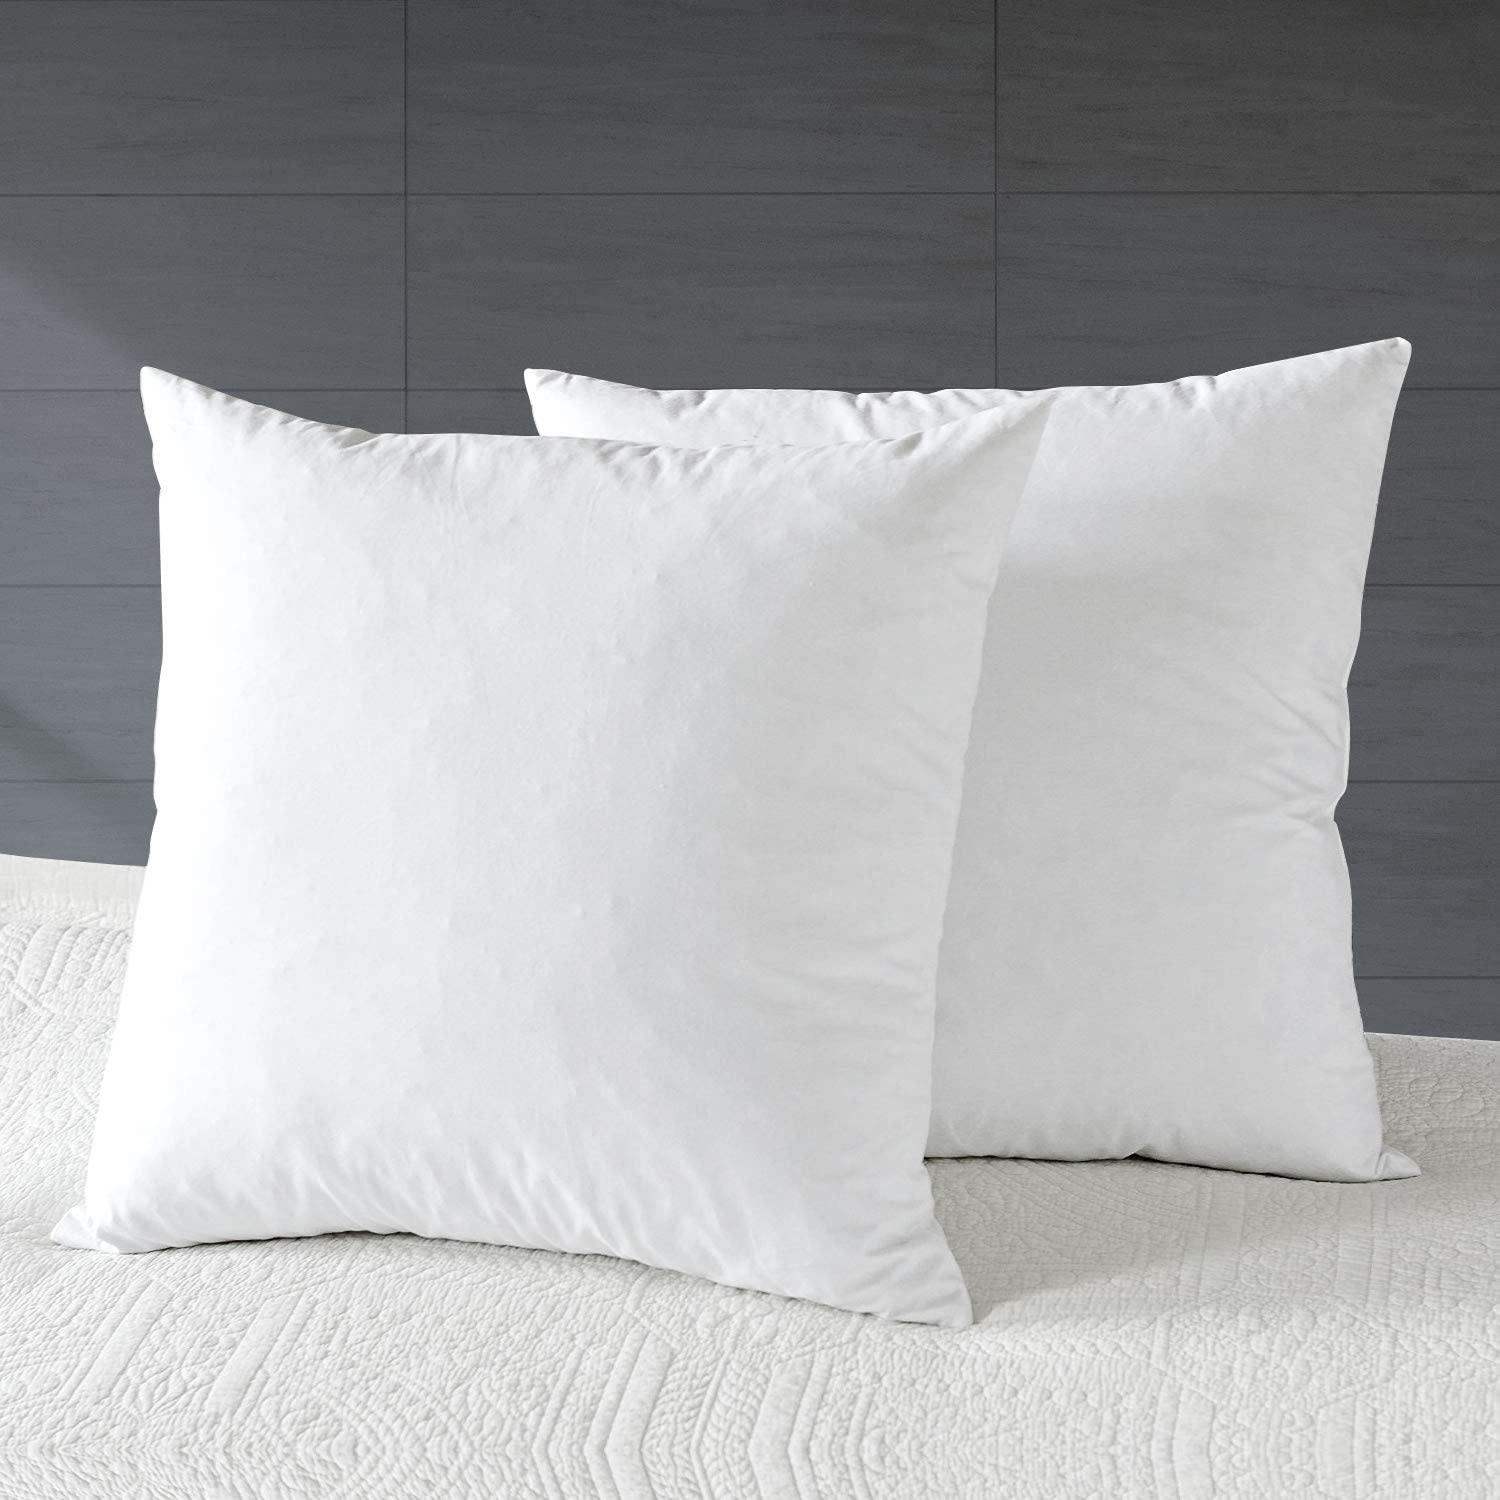 Amazon Com Apsmile Goose Down Feather Throw Pillow Inserts 2 Pack 16x16 Euro Square Decorative Pillow Inserts For Bed Sofa Couch White Kitchen Dining